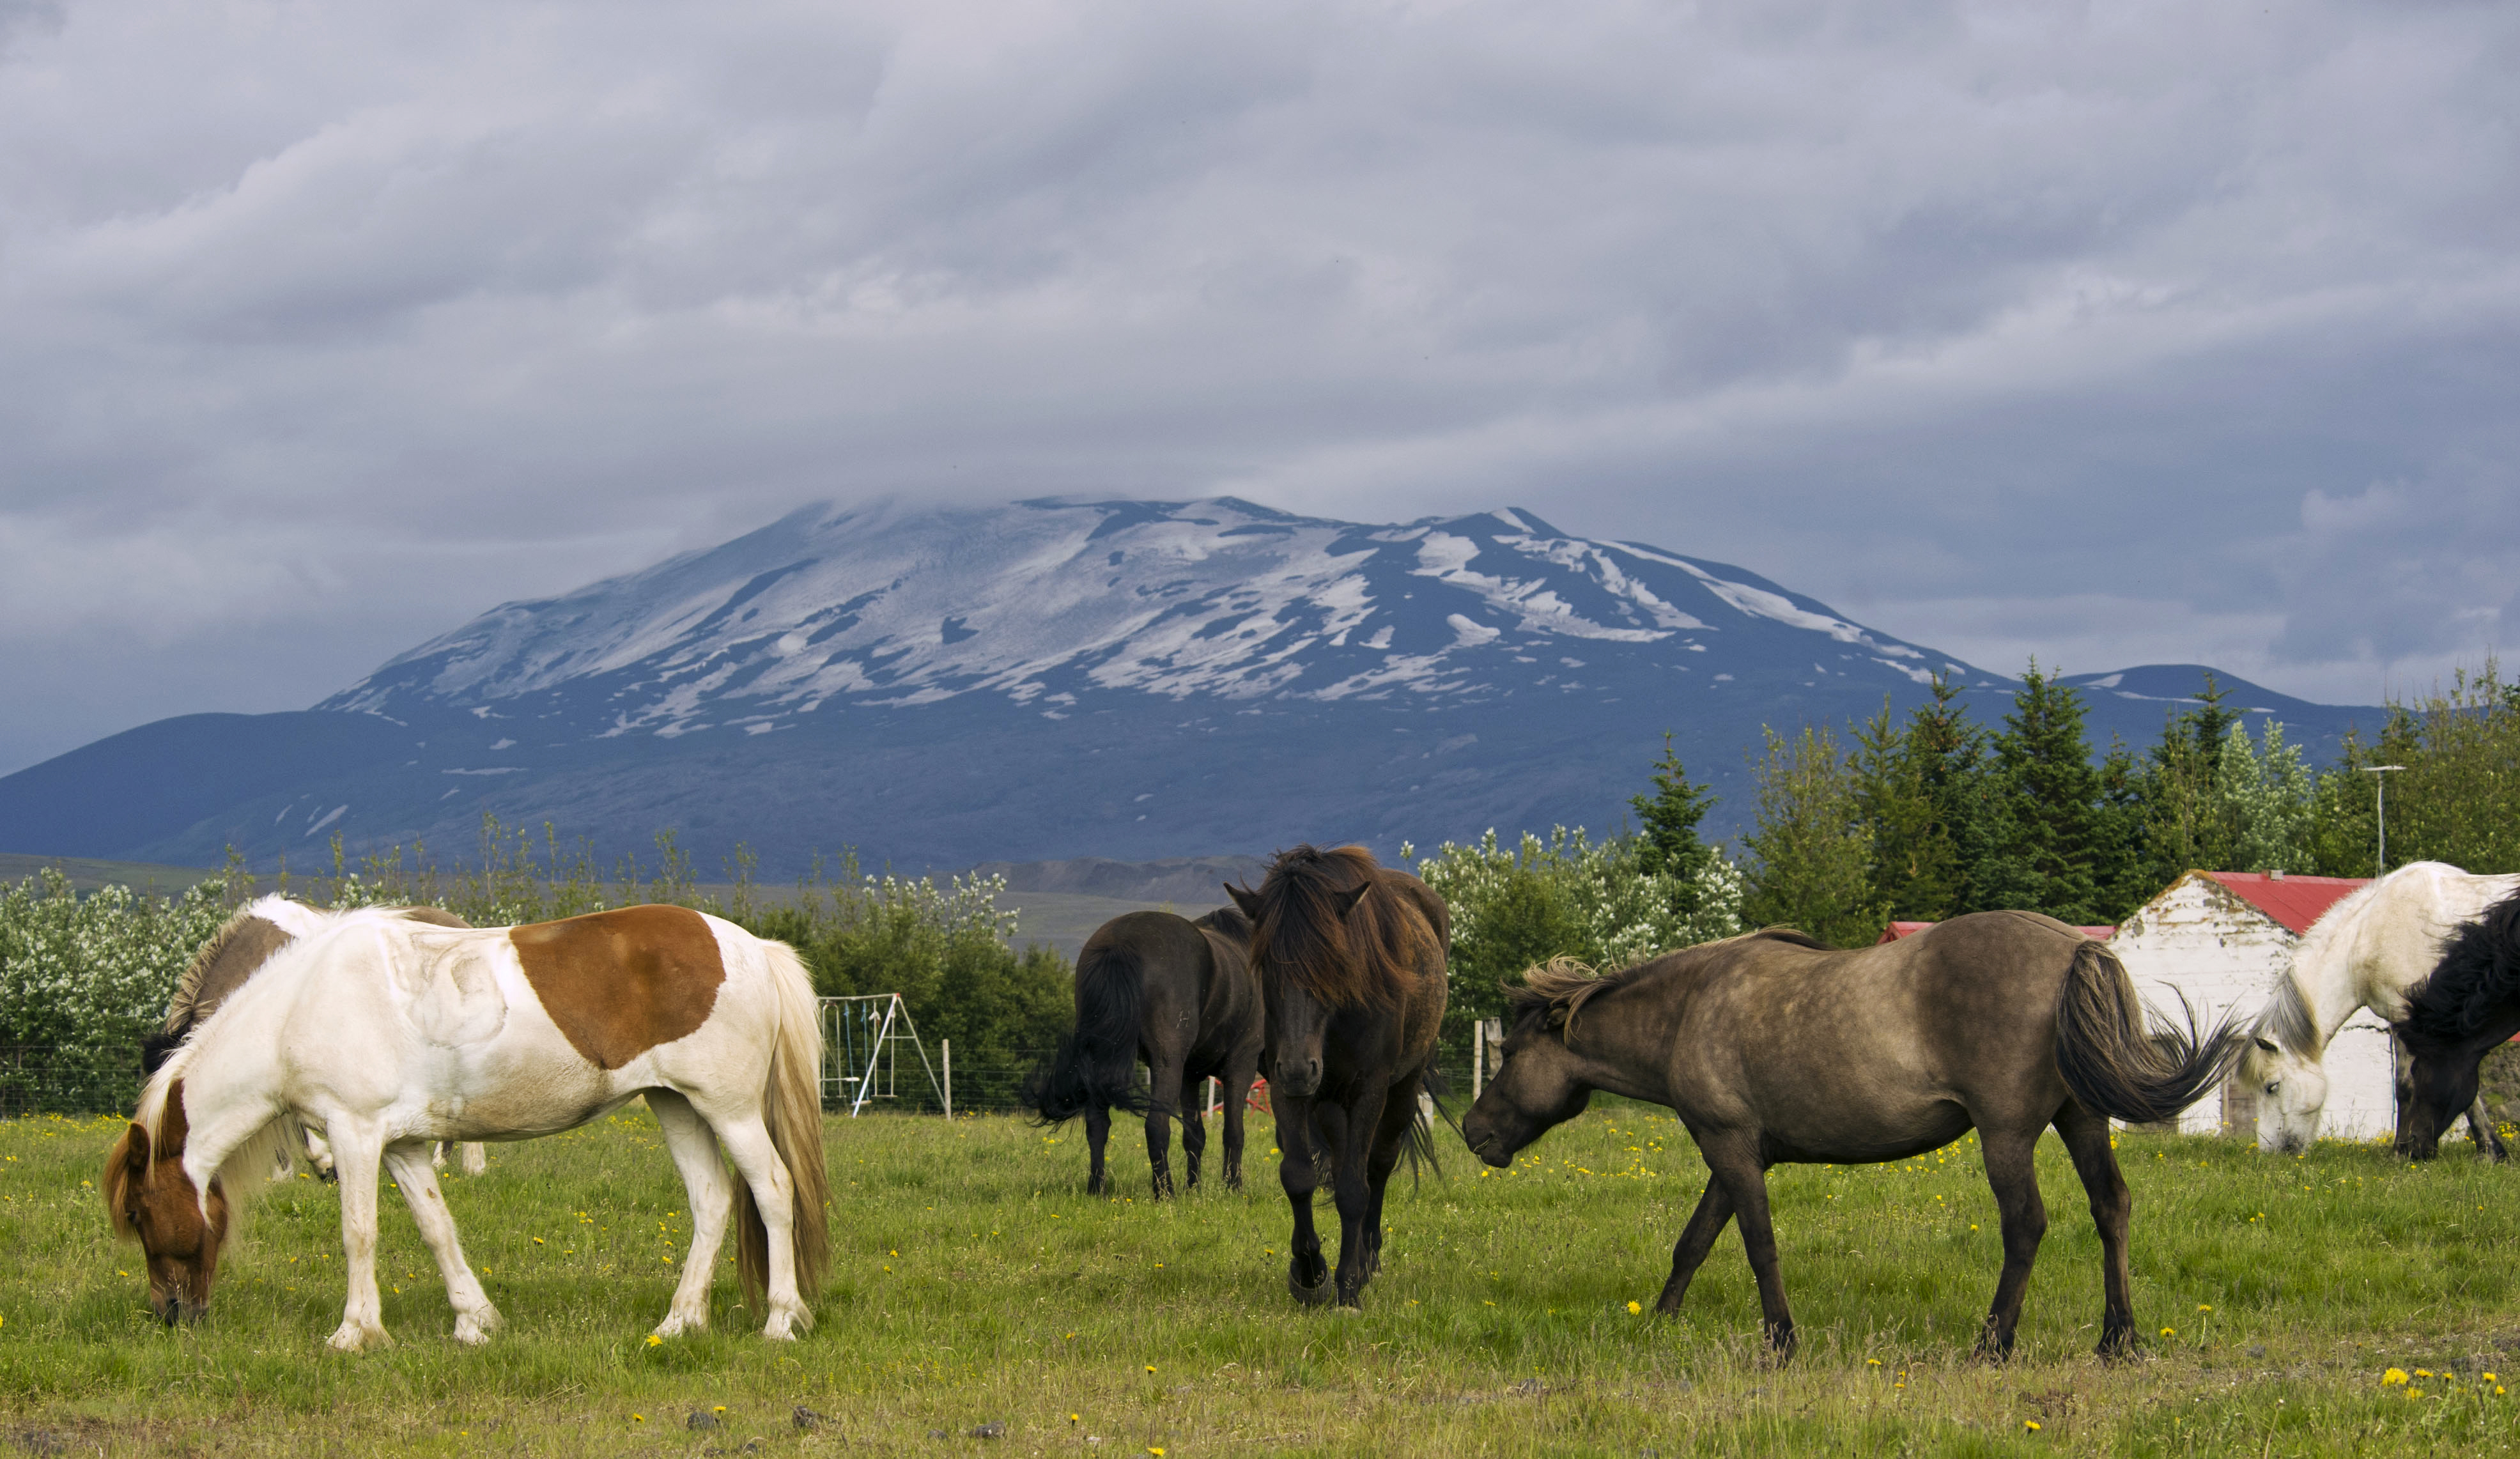 Horses walk in a meadow with Iceland's Hekla volcano in the background on July 6, 2011. One of Iceland's most feared volcanoes looks ready to erupt, with measurements indicating magma movement, Icelandic experts said yesterday, raising fears of a new ash cloud halting flights over Europe. (Halldor Kolbeins/AFP/Getty Images)